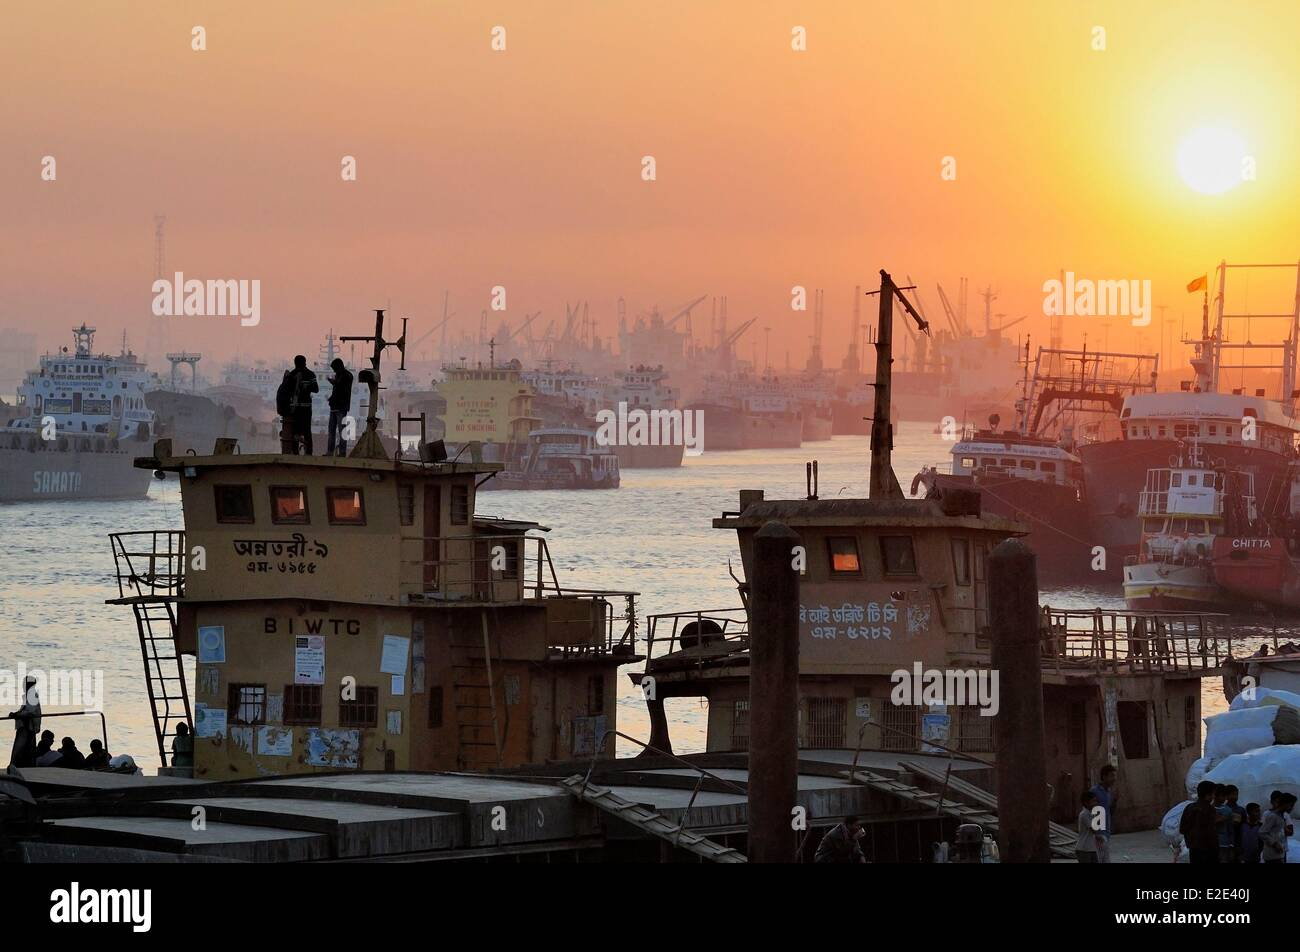 Bangladesh Chittagong principal seaport and second largest city of Bangladesh located at the estuary of the Karnaphuli - Stock Image